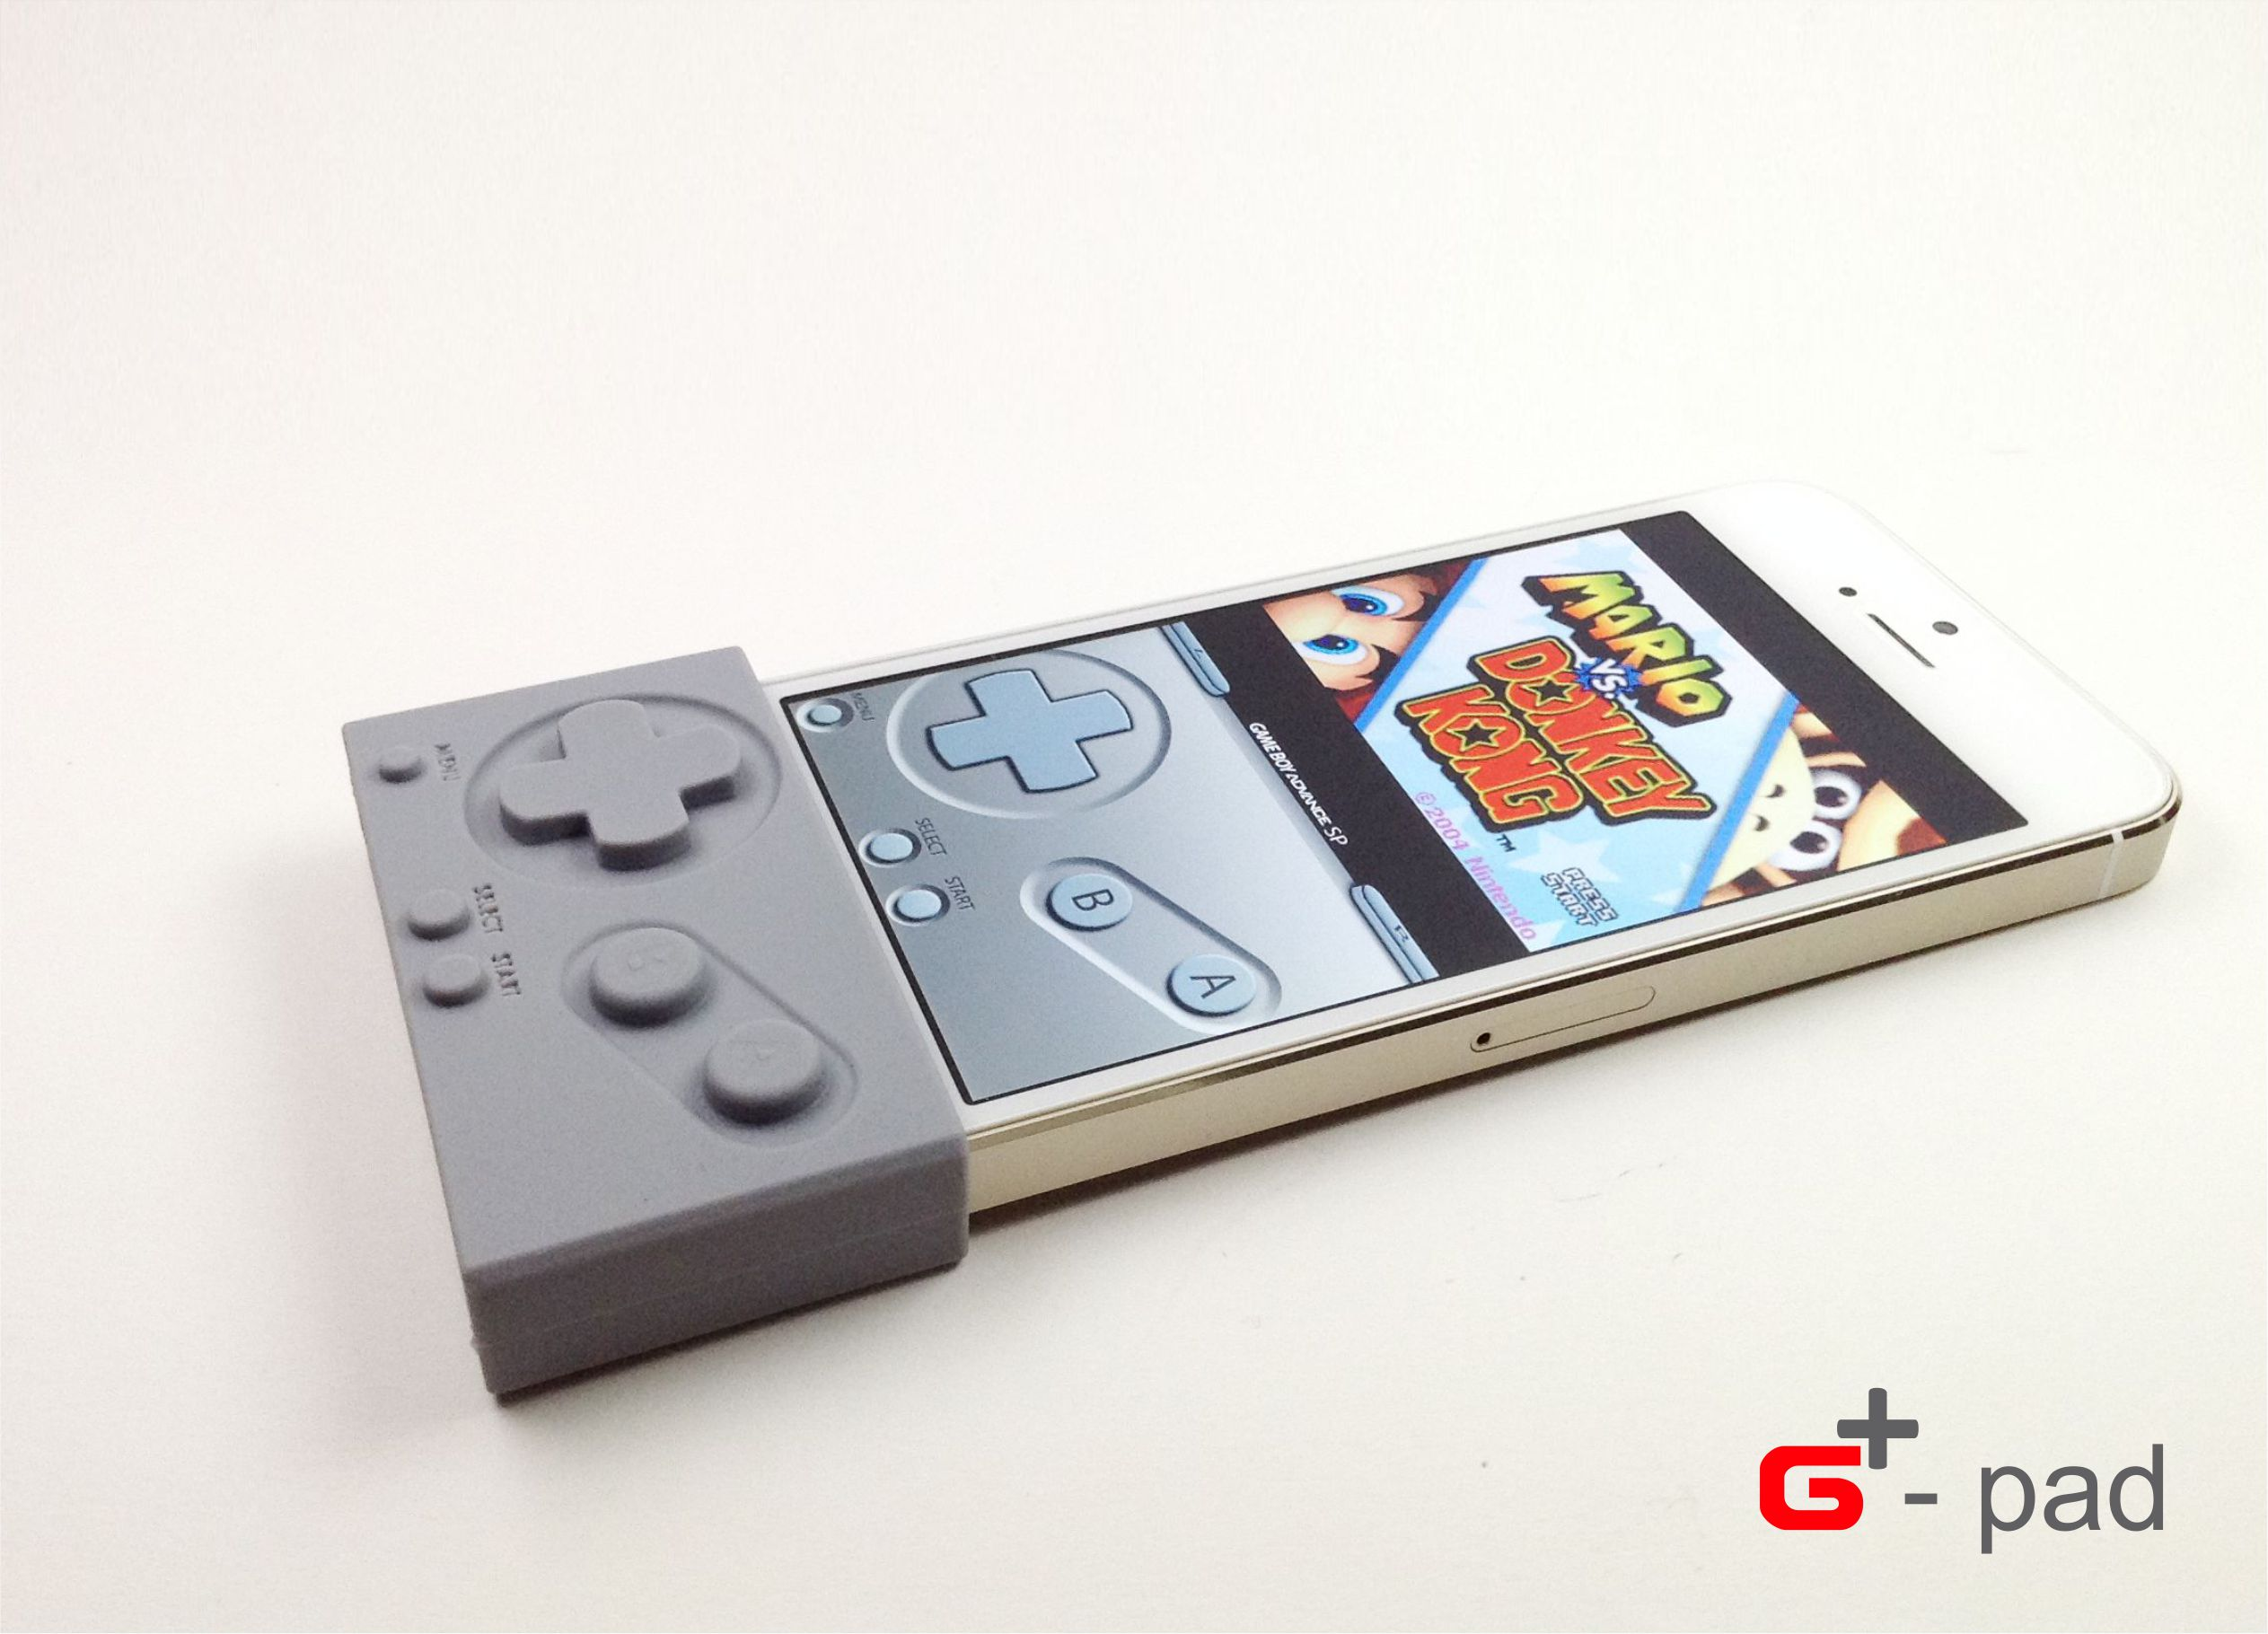 Game boy advance nude skins softcore photos